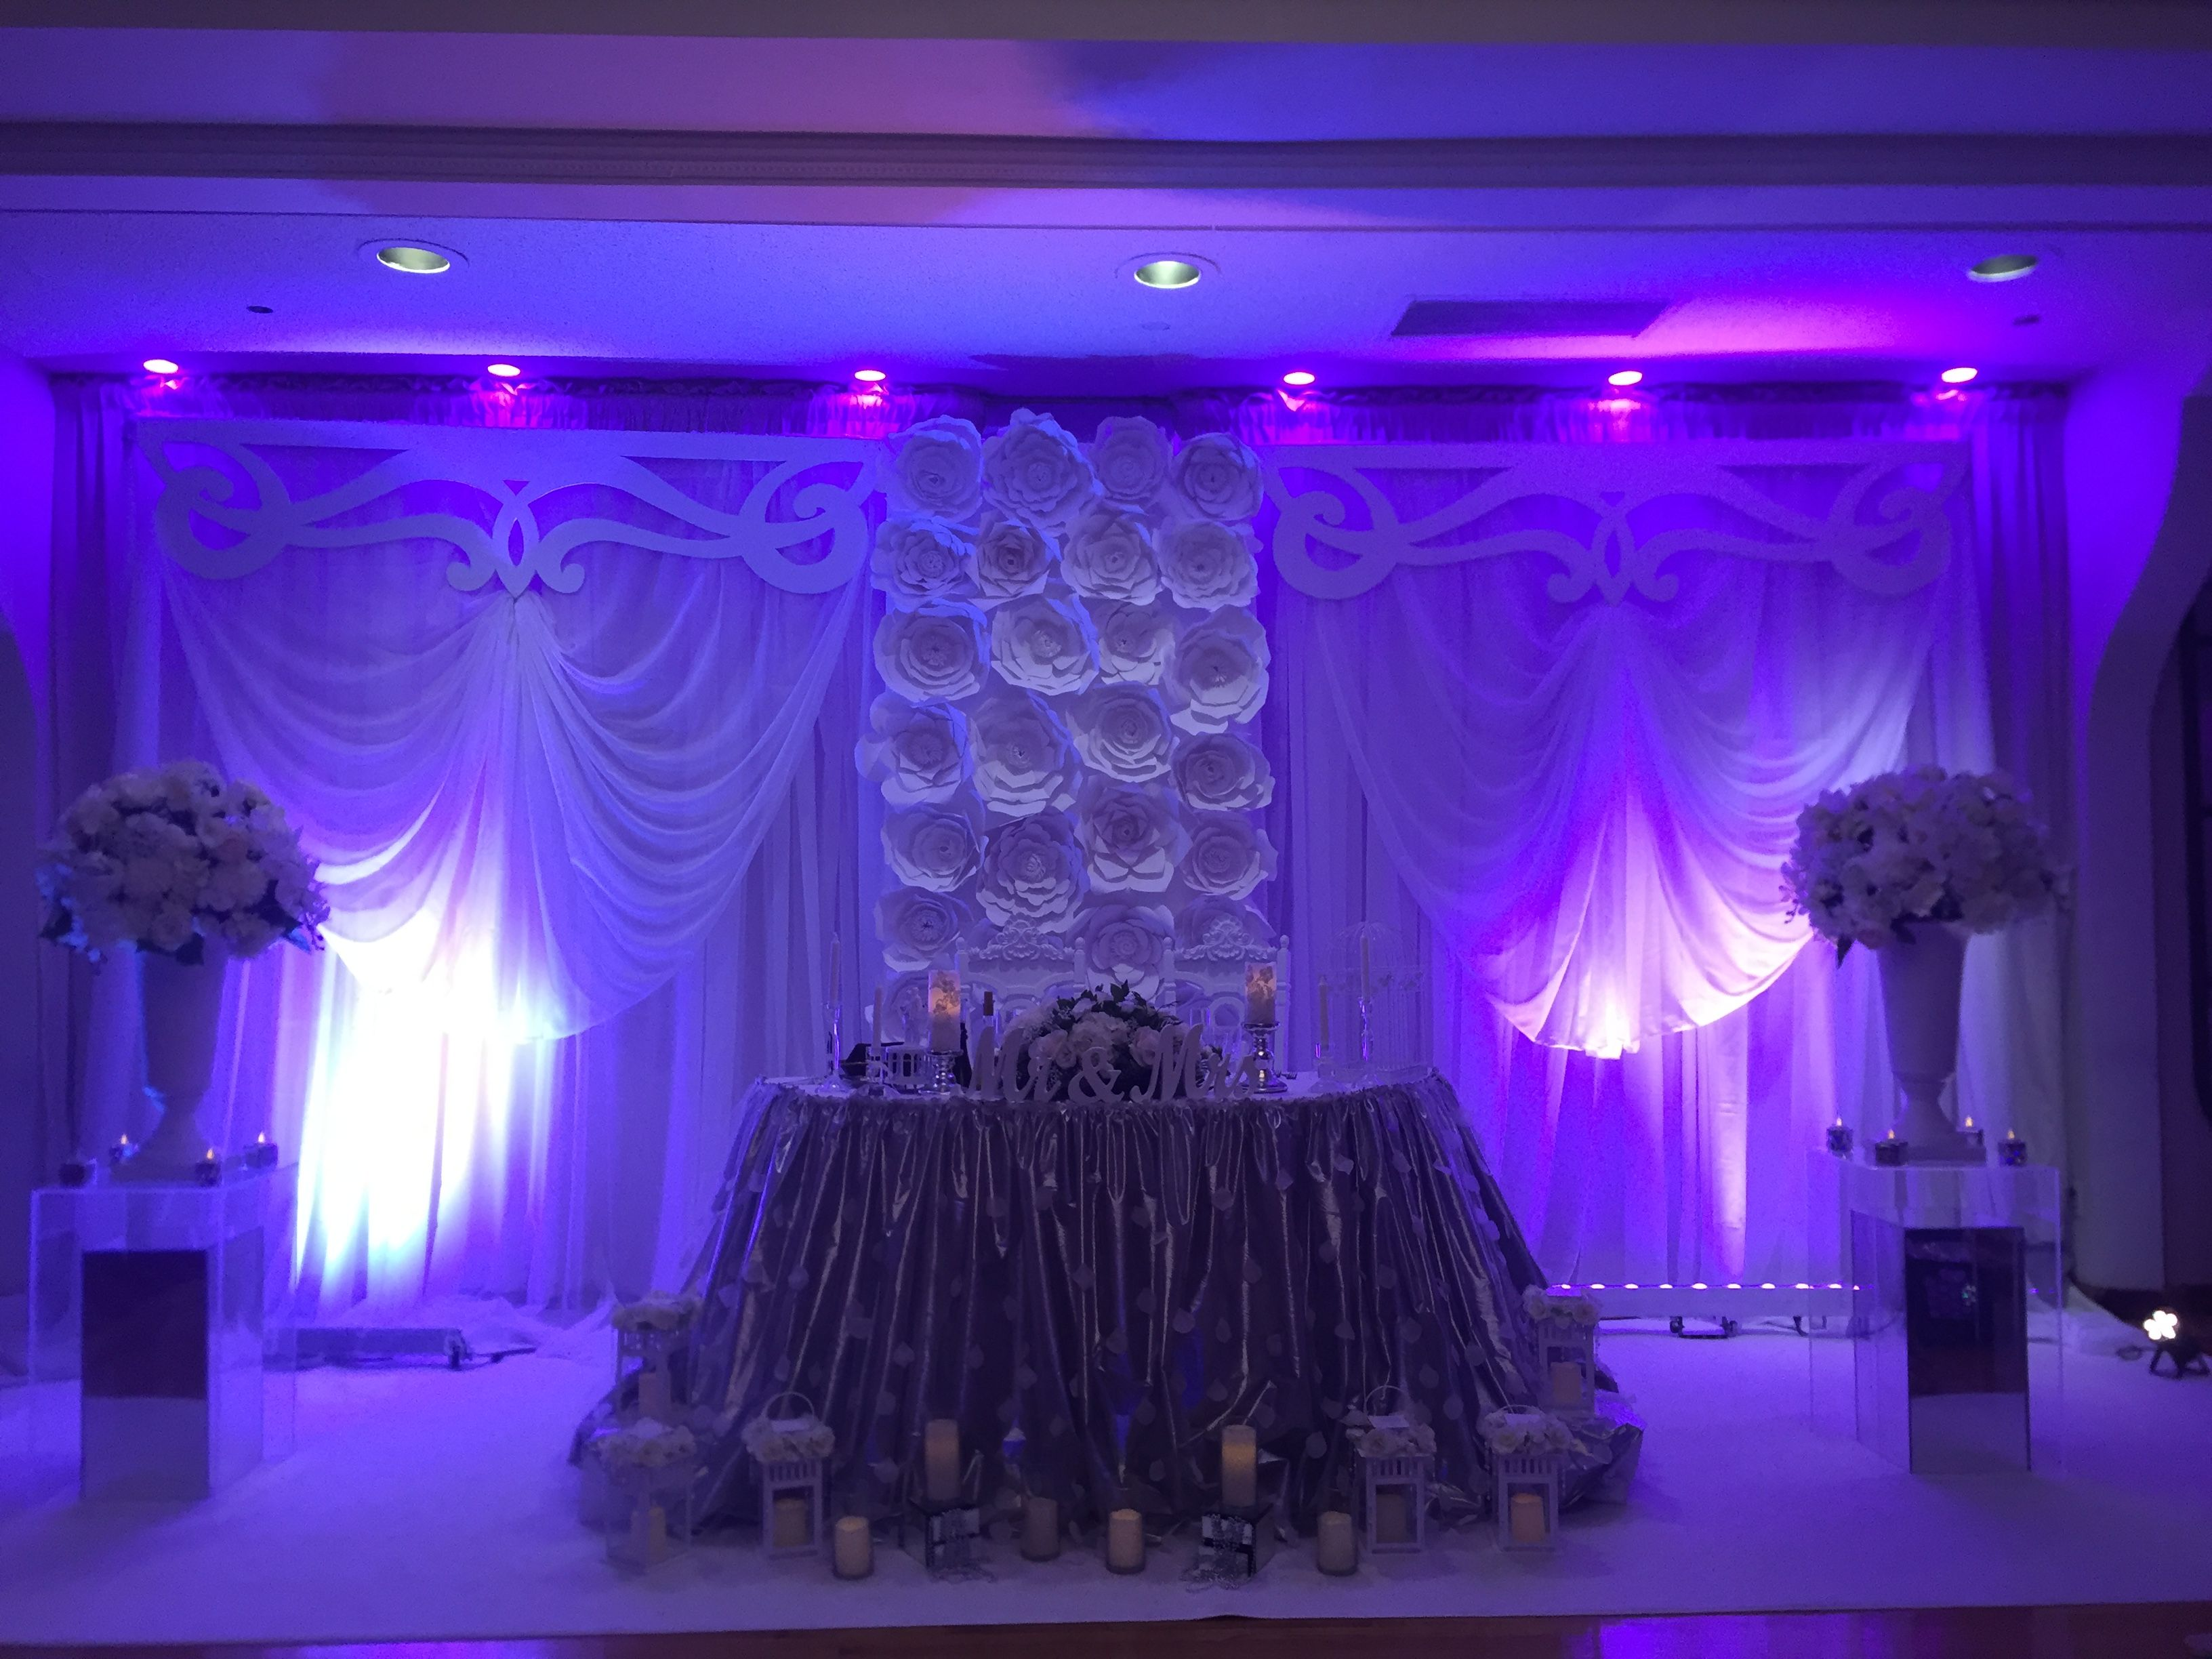 Wedding stage decoration images in hd  Pin by Lv Flowerevents on Backdropbylinda Linda event ideas